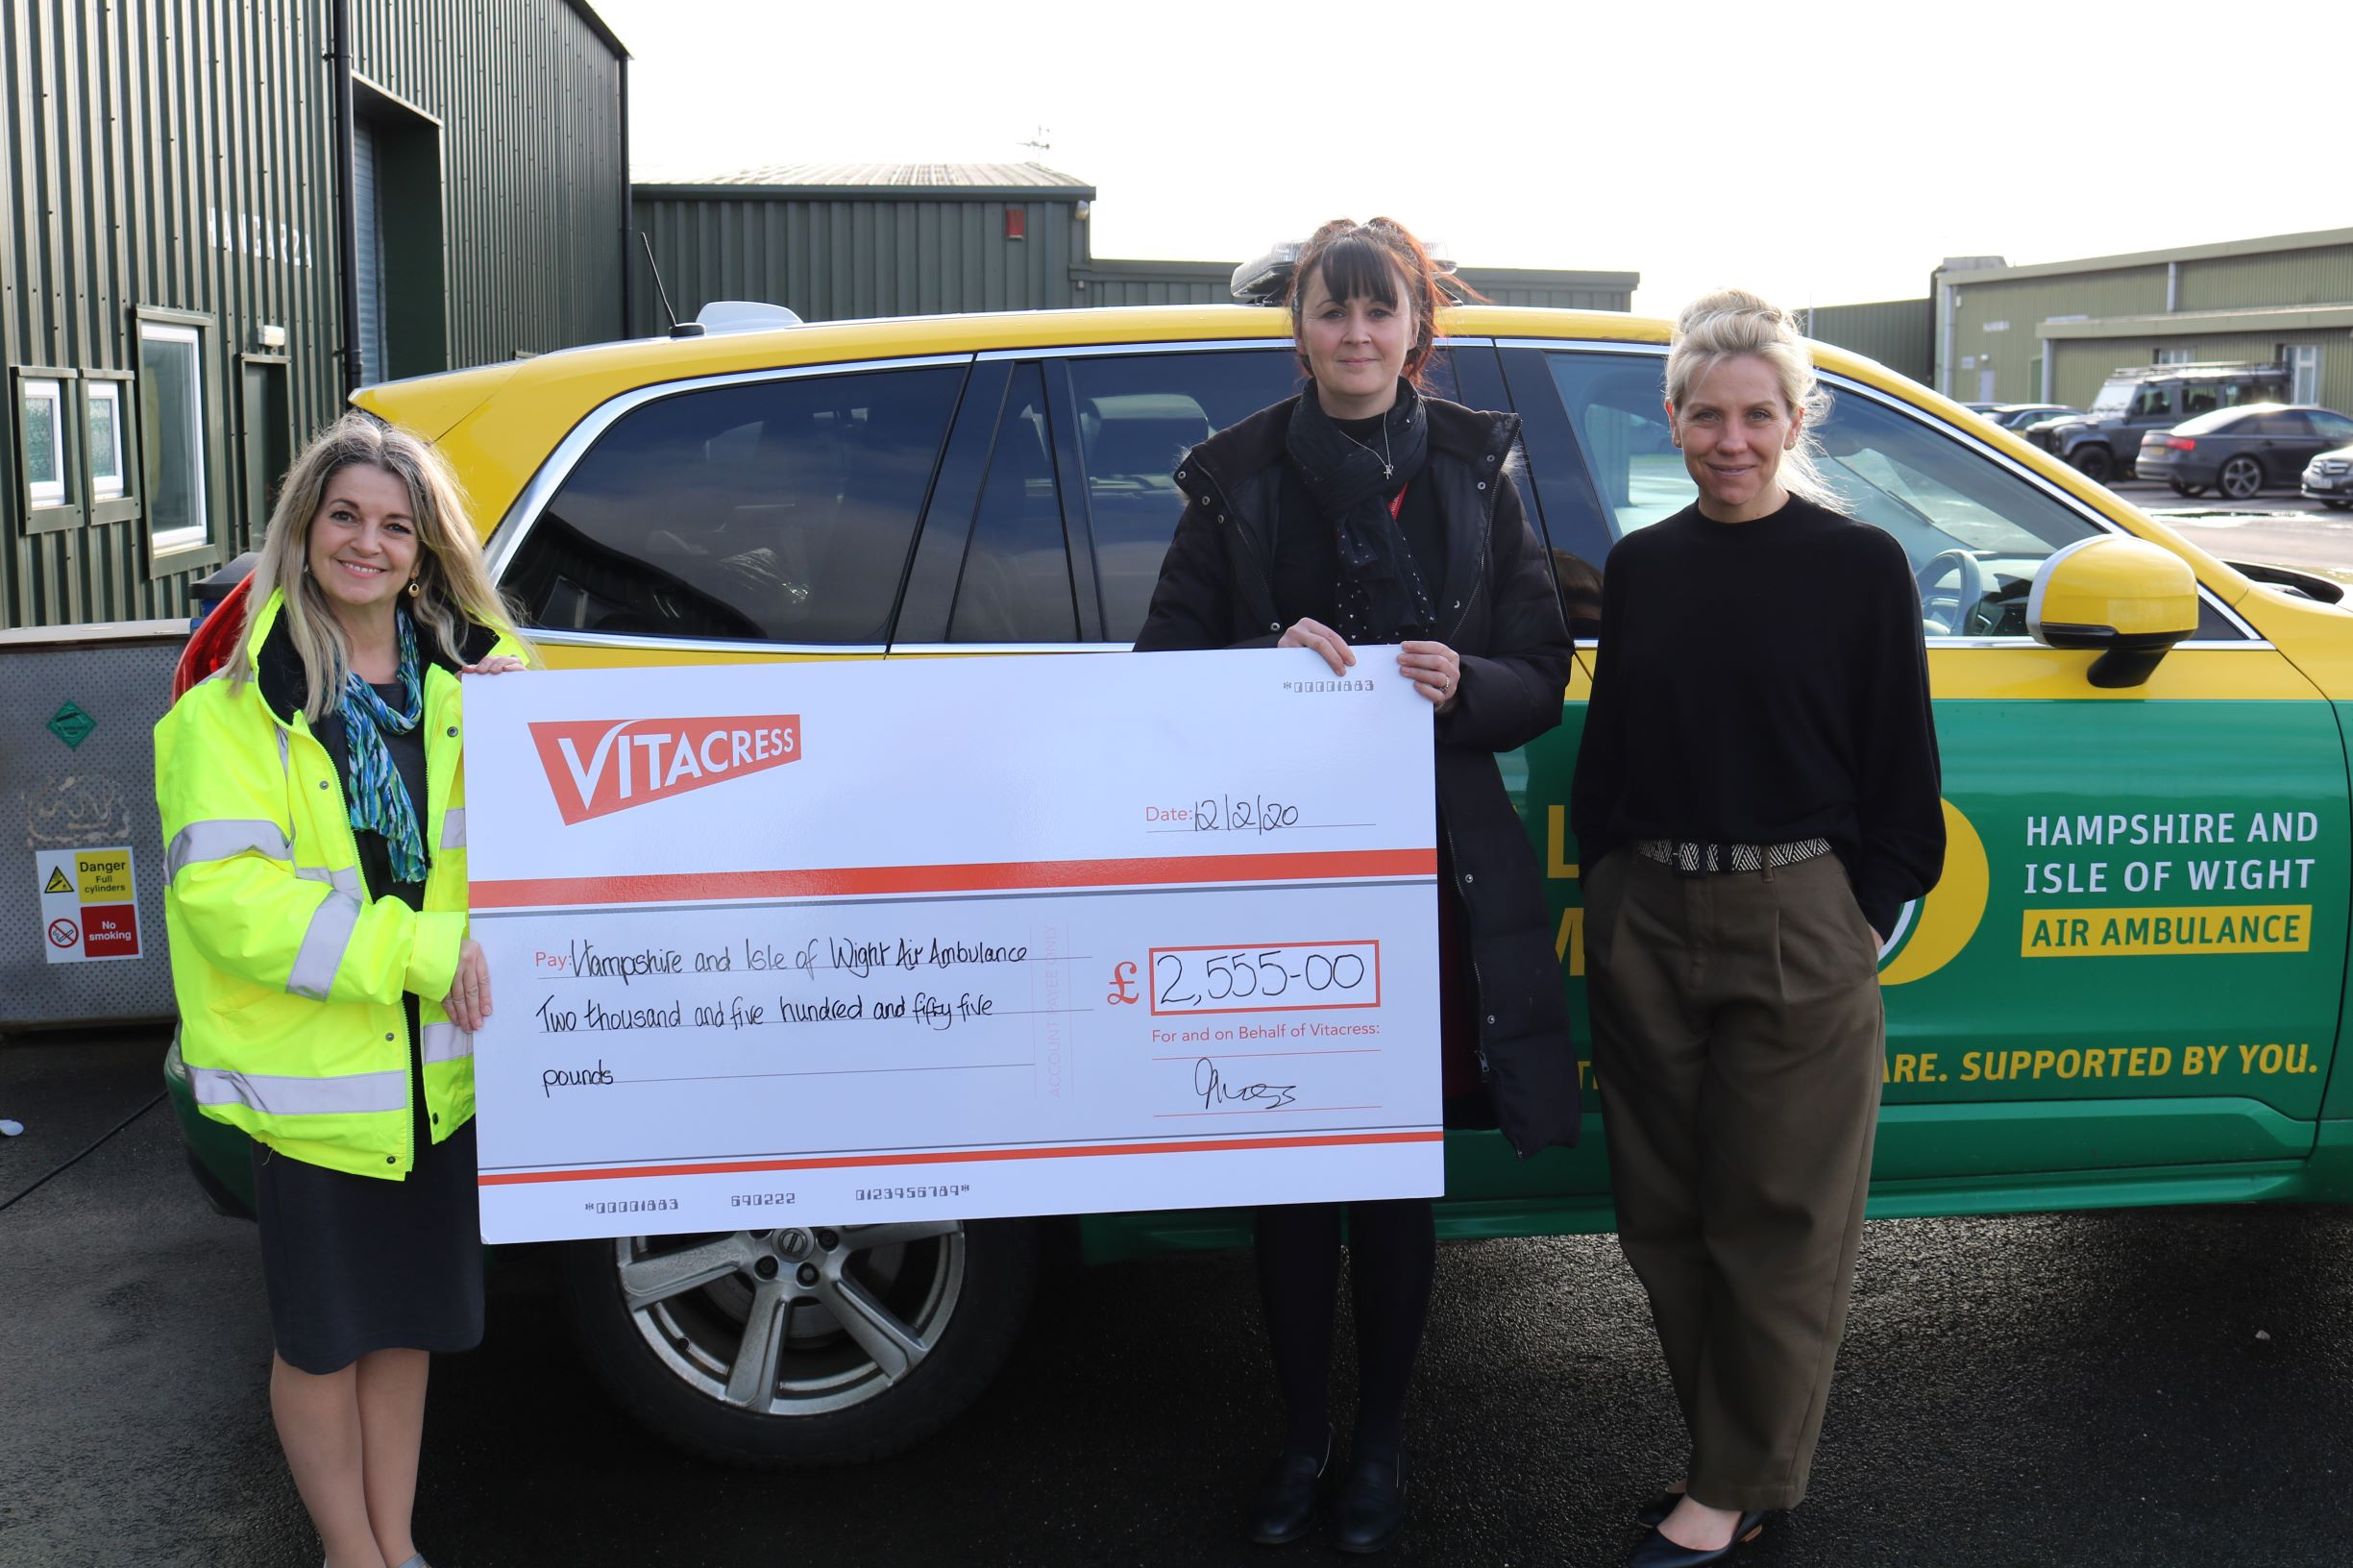 Vitacress Salads Raises Funds for Hampshire Isle of Wight Air Ambulance